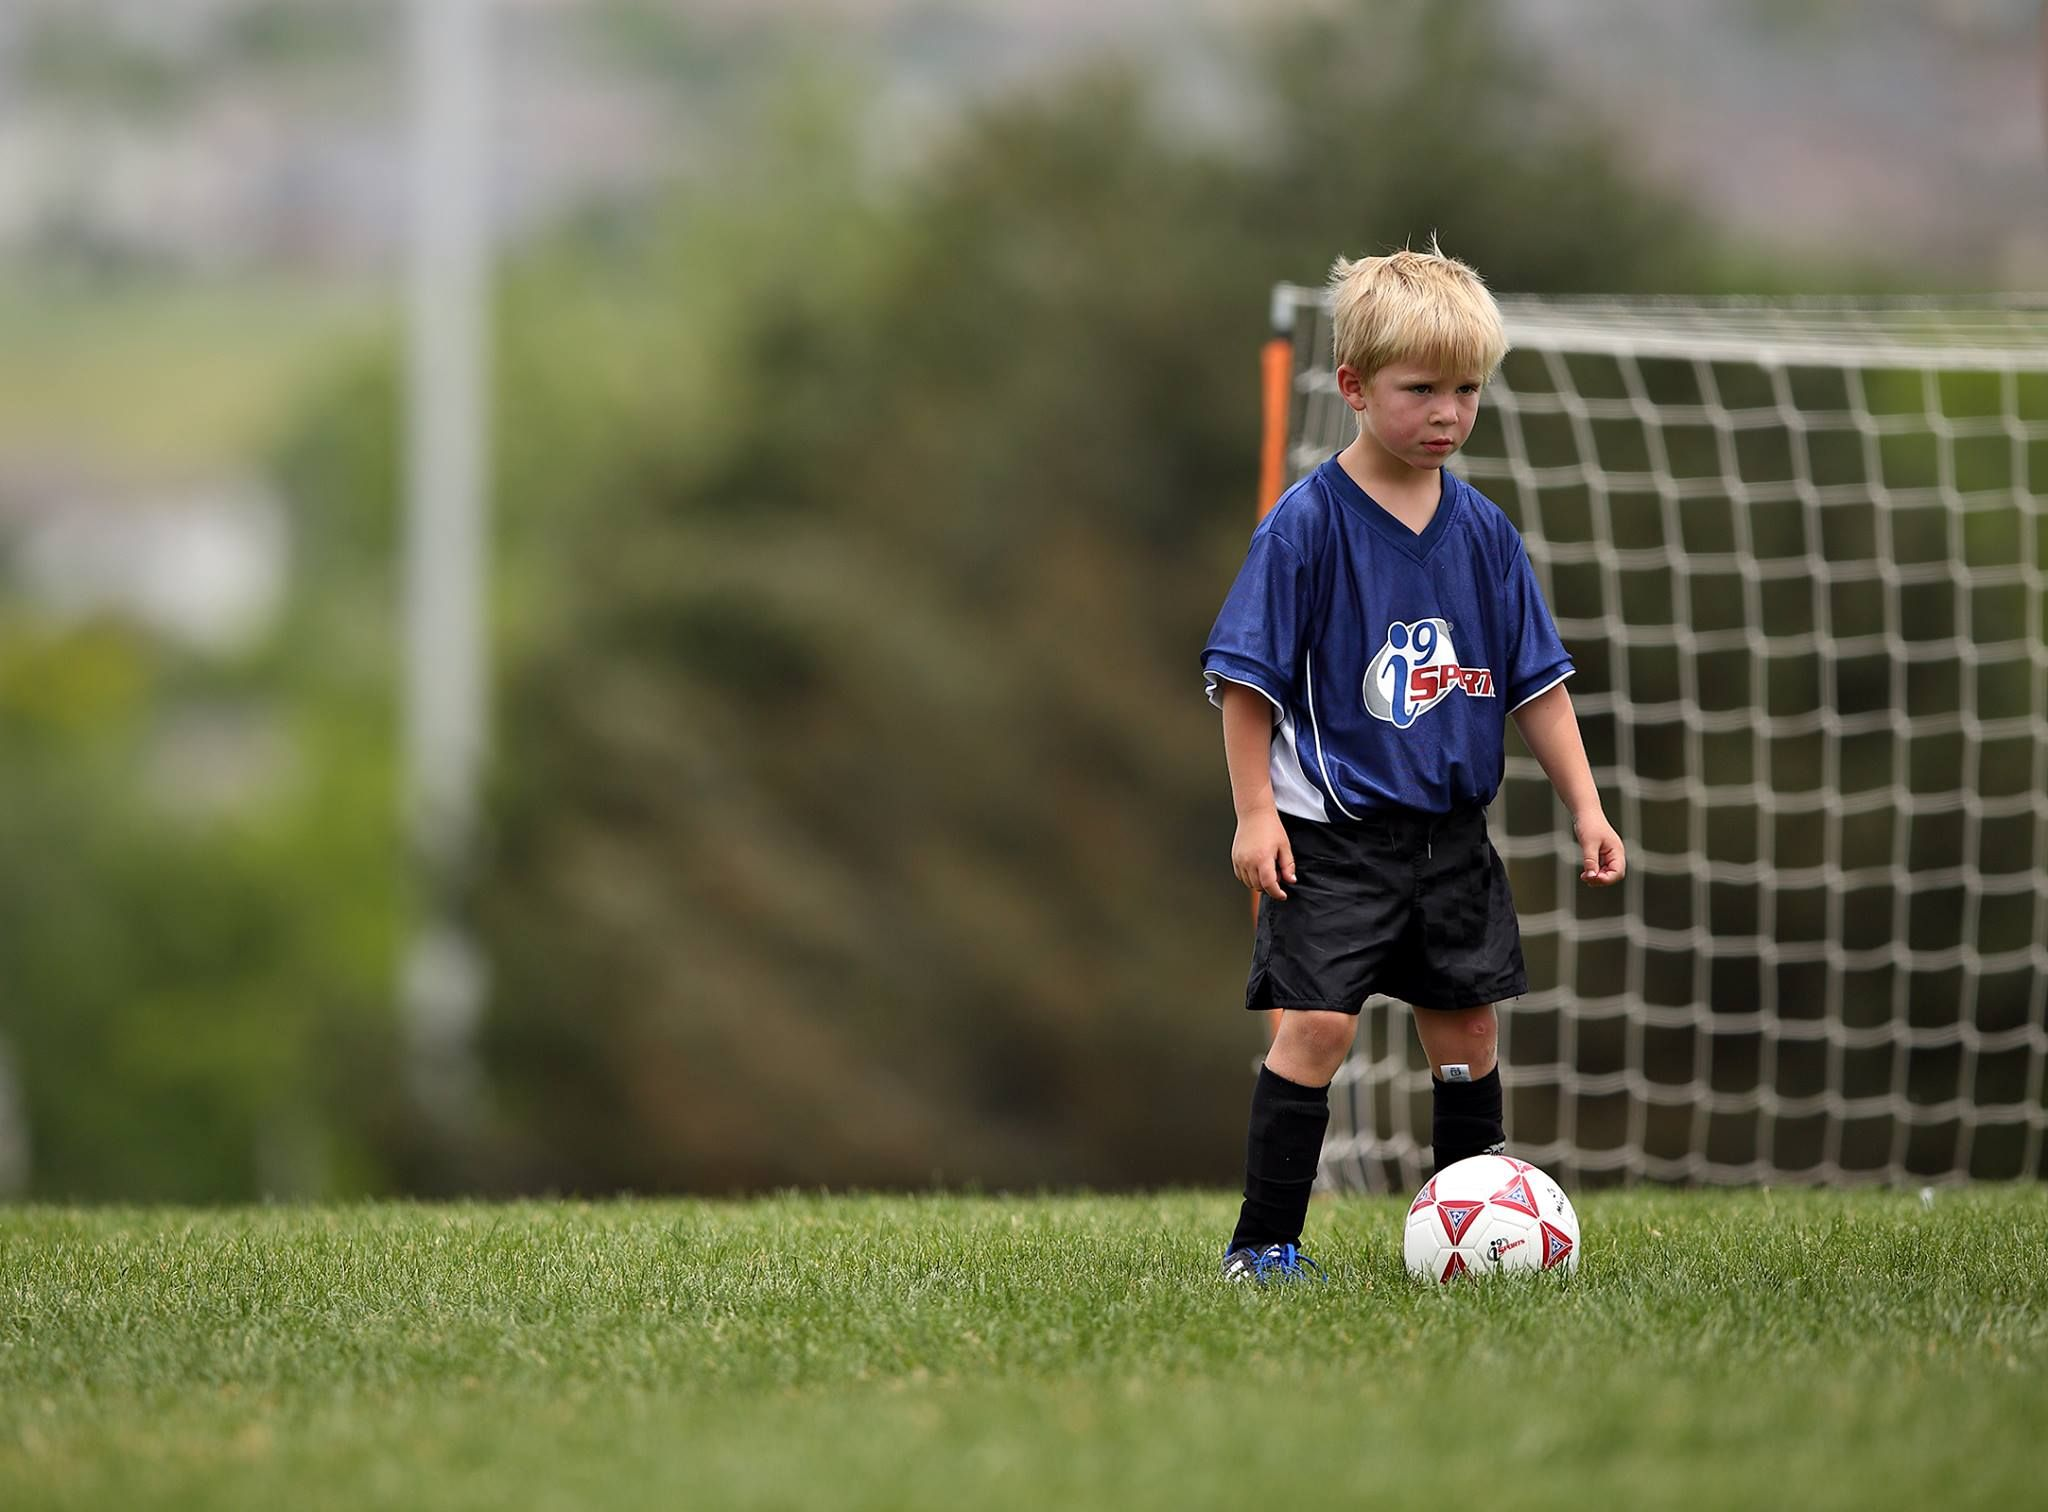 Youth soccer, Youth